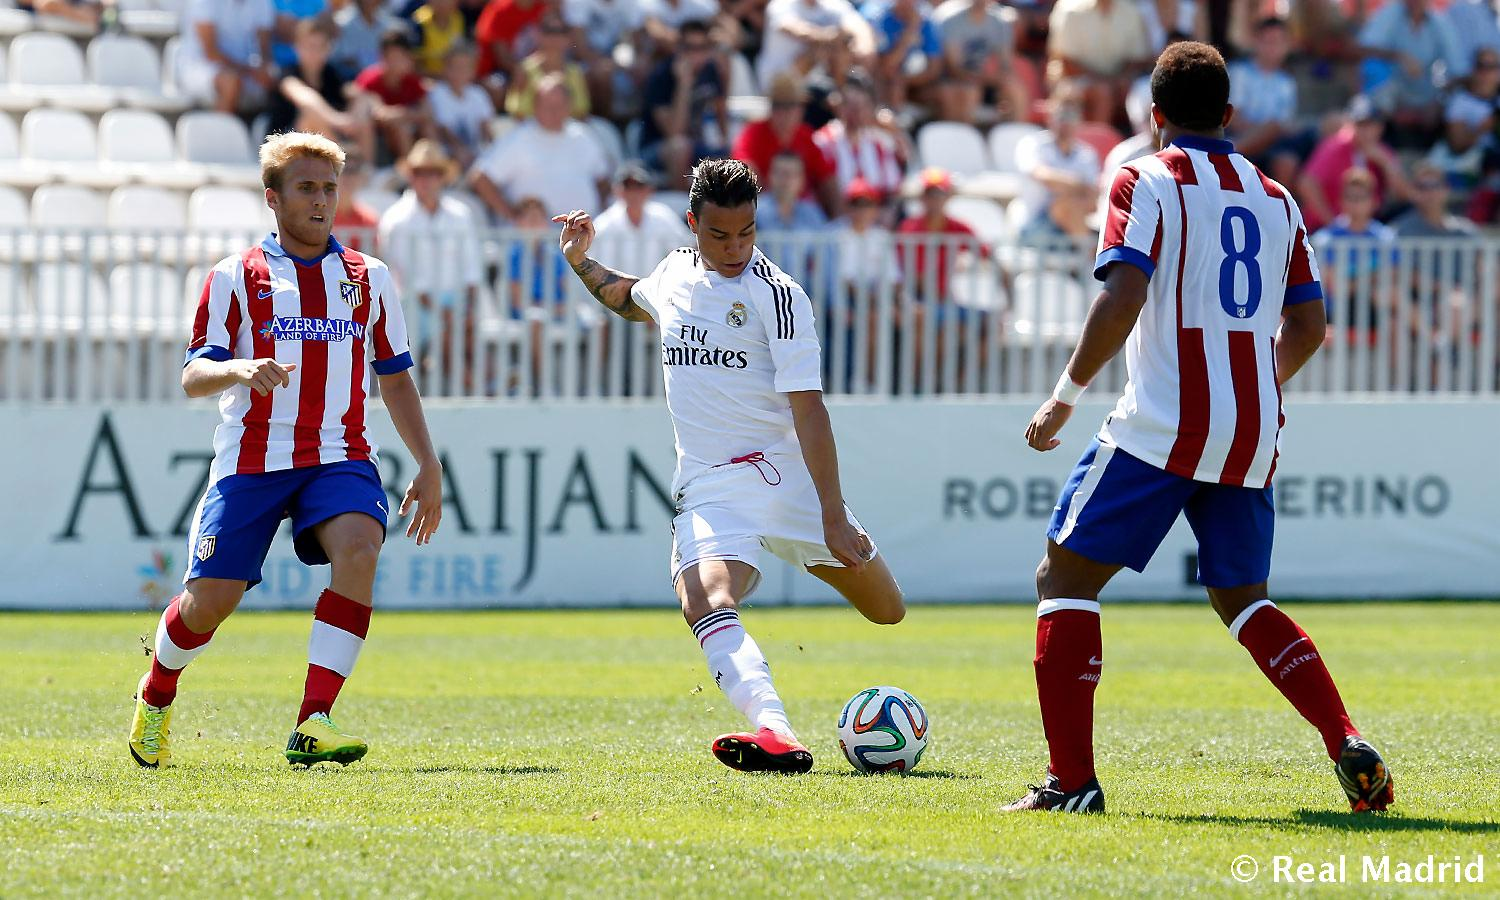 Real Madrid - Atlético de Madrid - Real Madrid Castilla - 24-08-2014